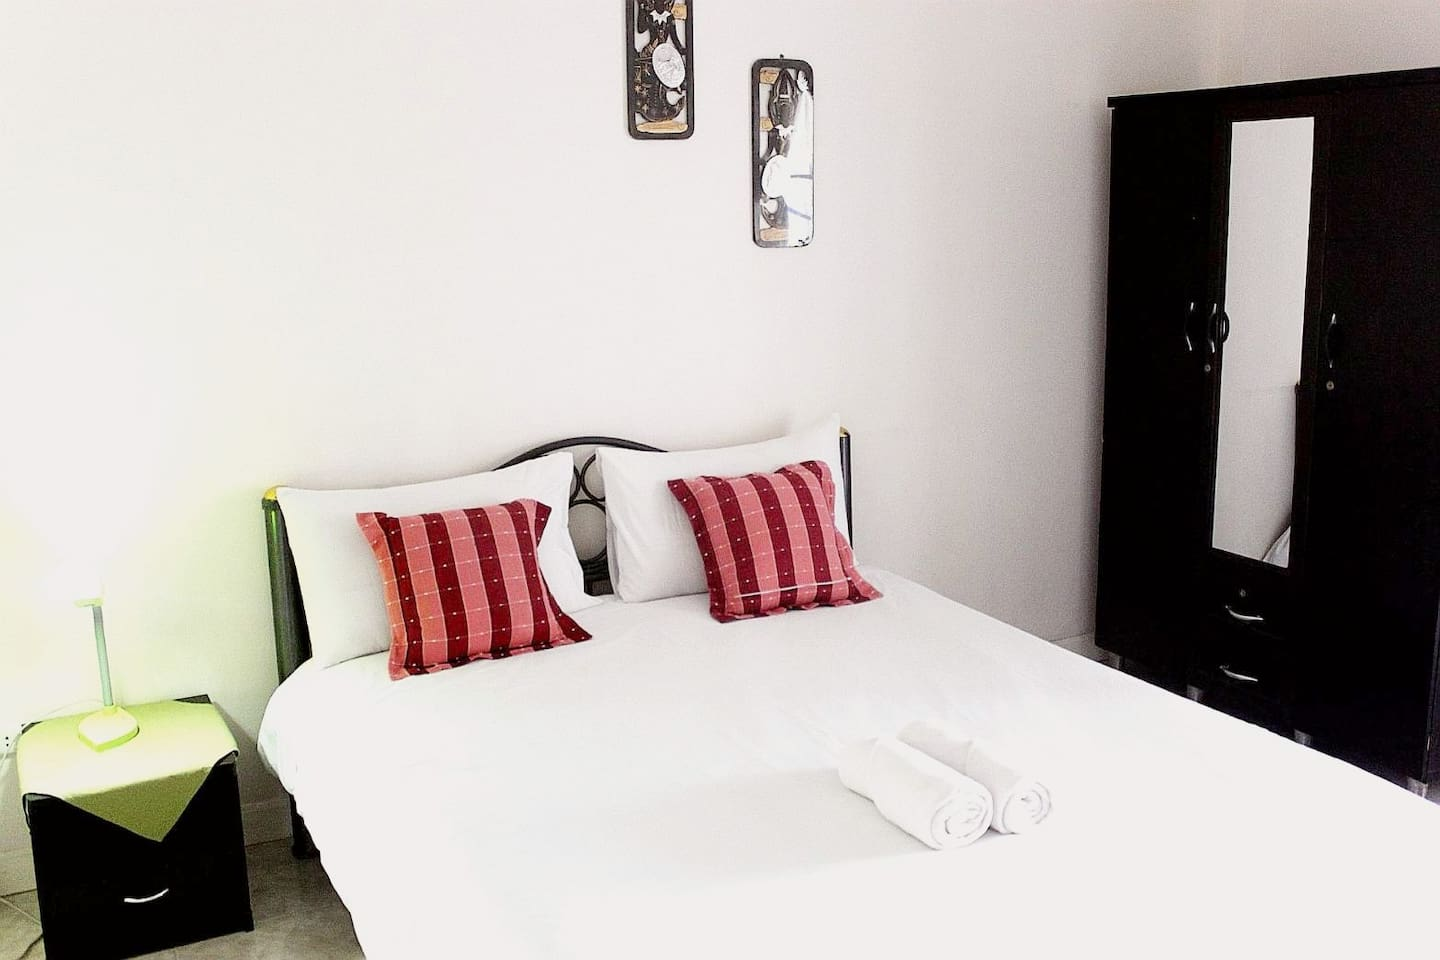 [Deluxe] King Double Bed Room